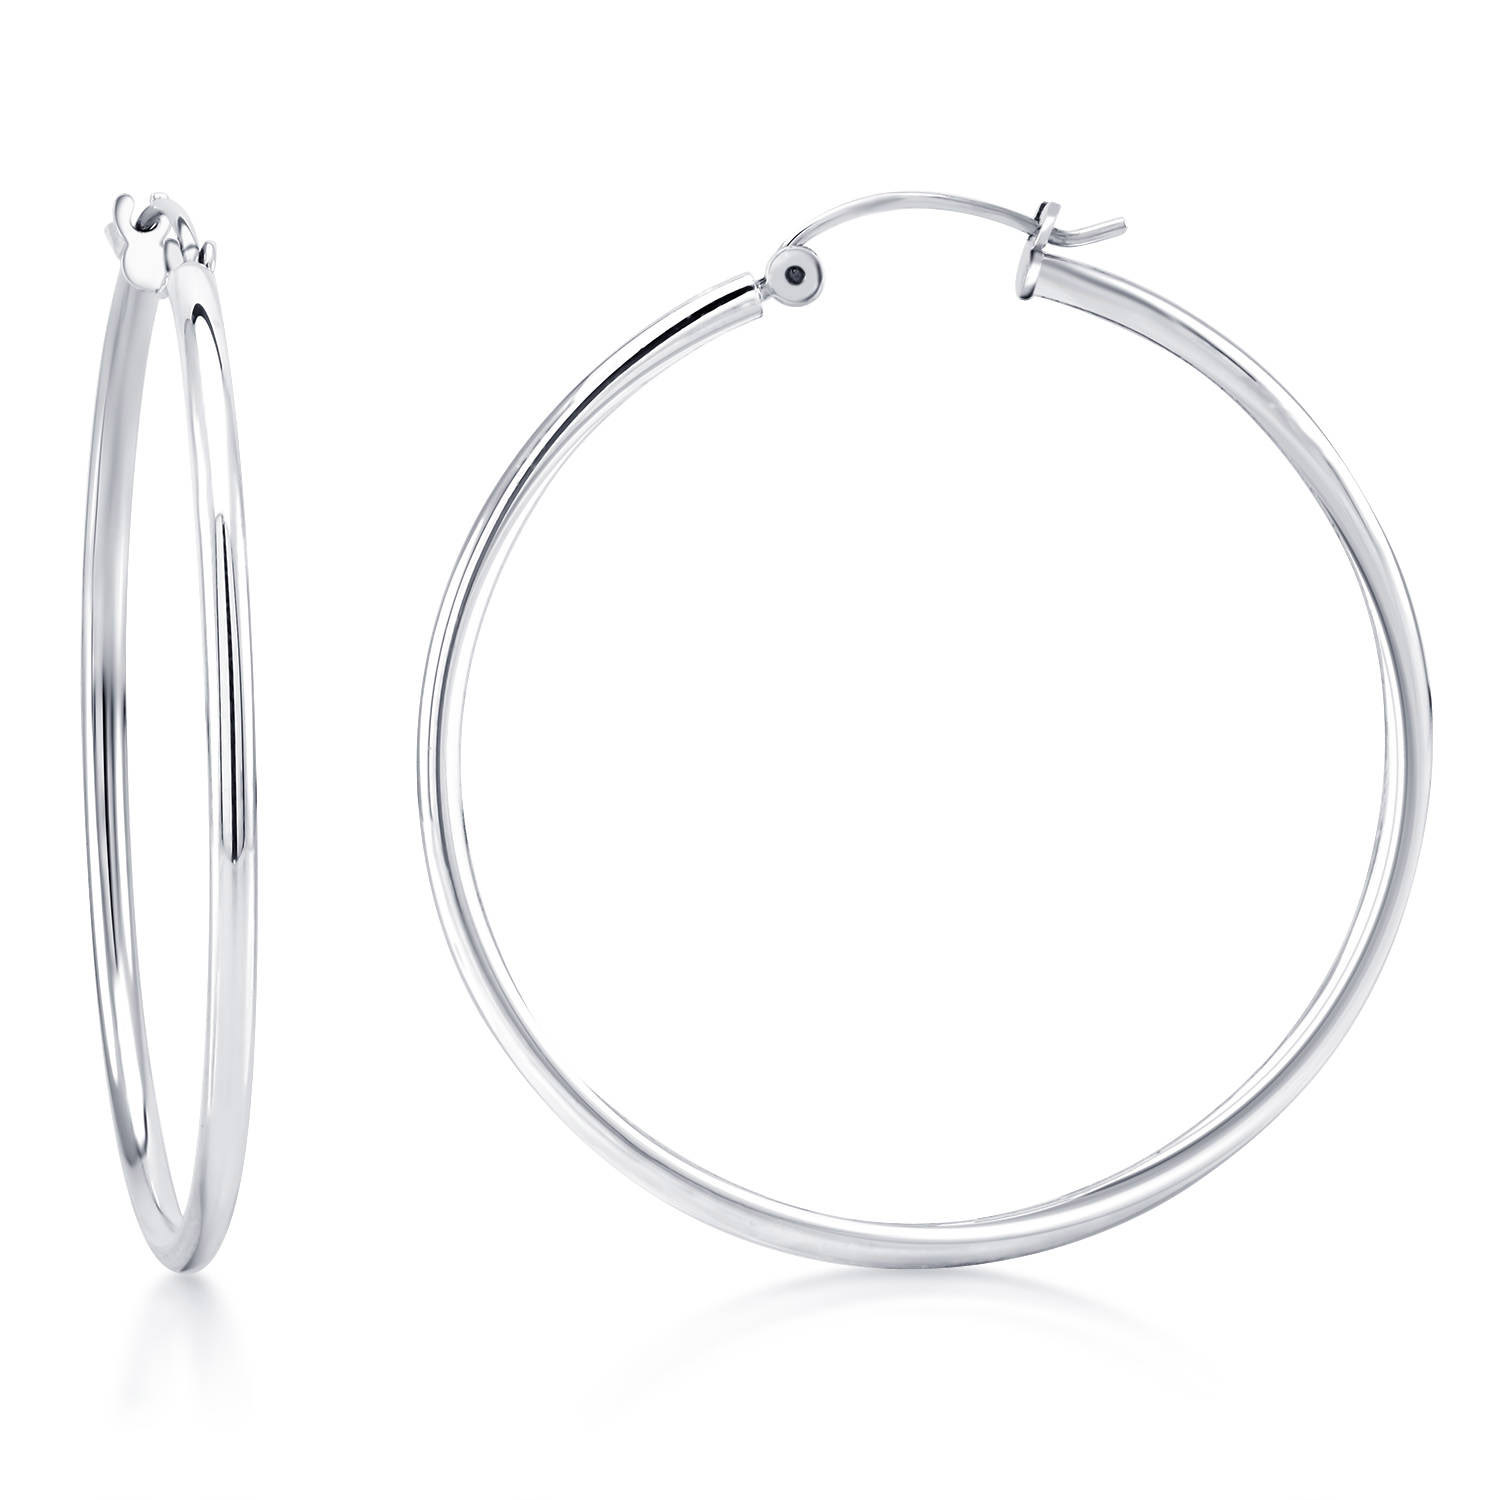 White Gold Hoop Earrings 2mm Width He2m